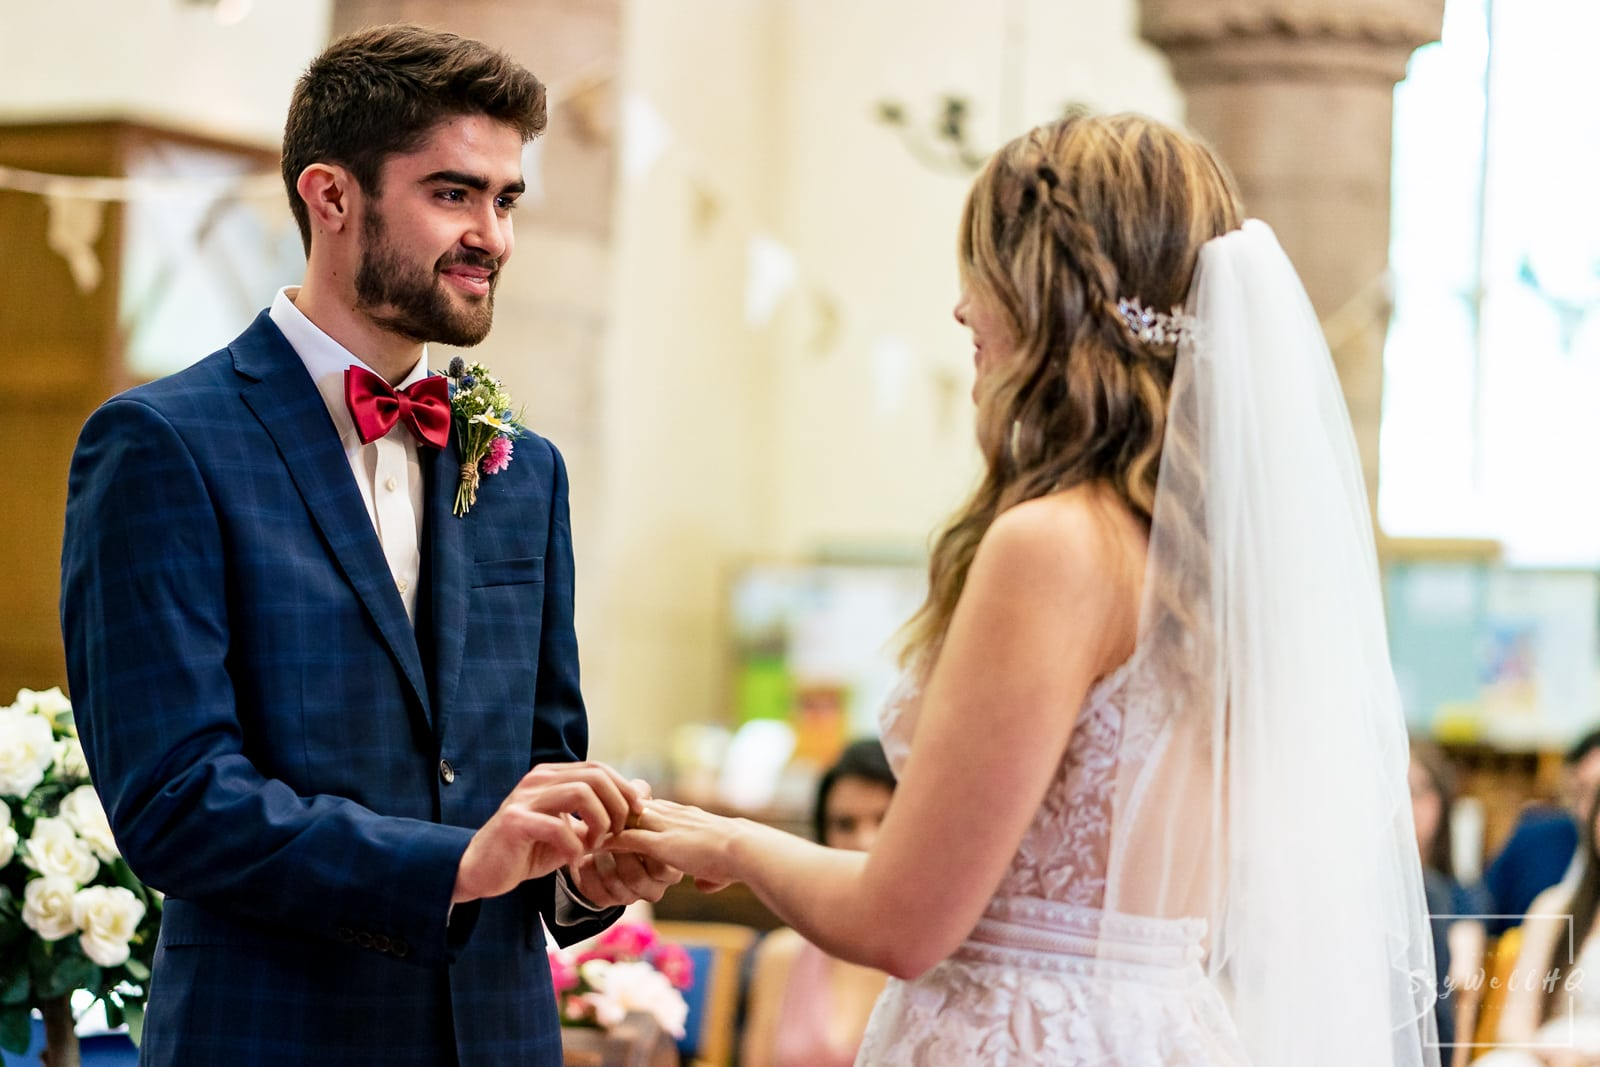 Emotional groom and bride exchange rings at their church wedding in Herefordshire